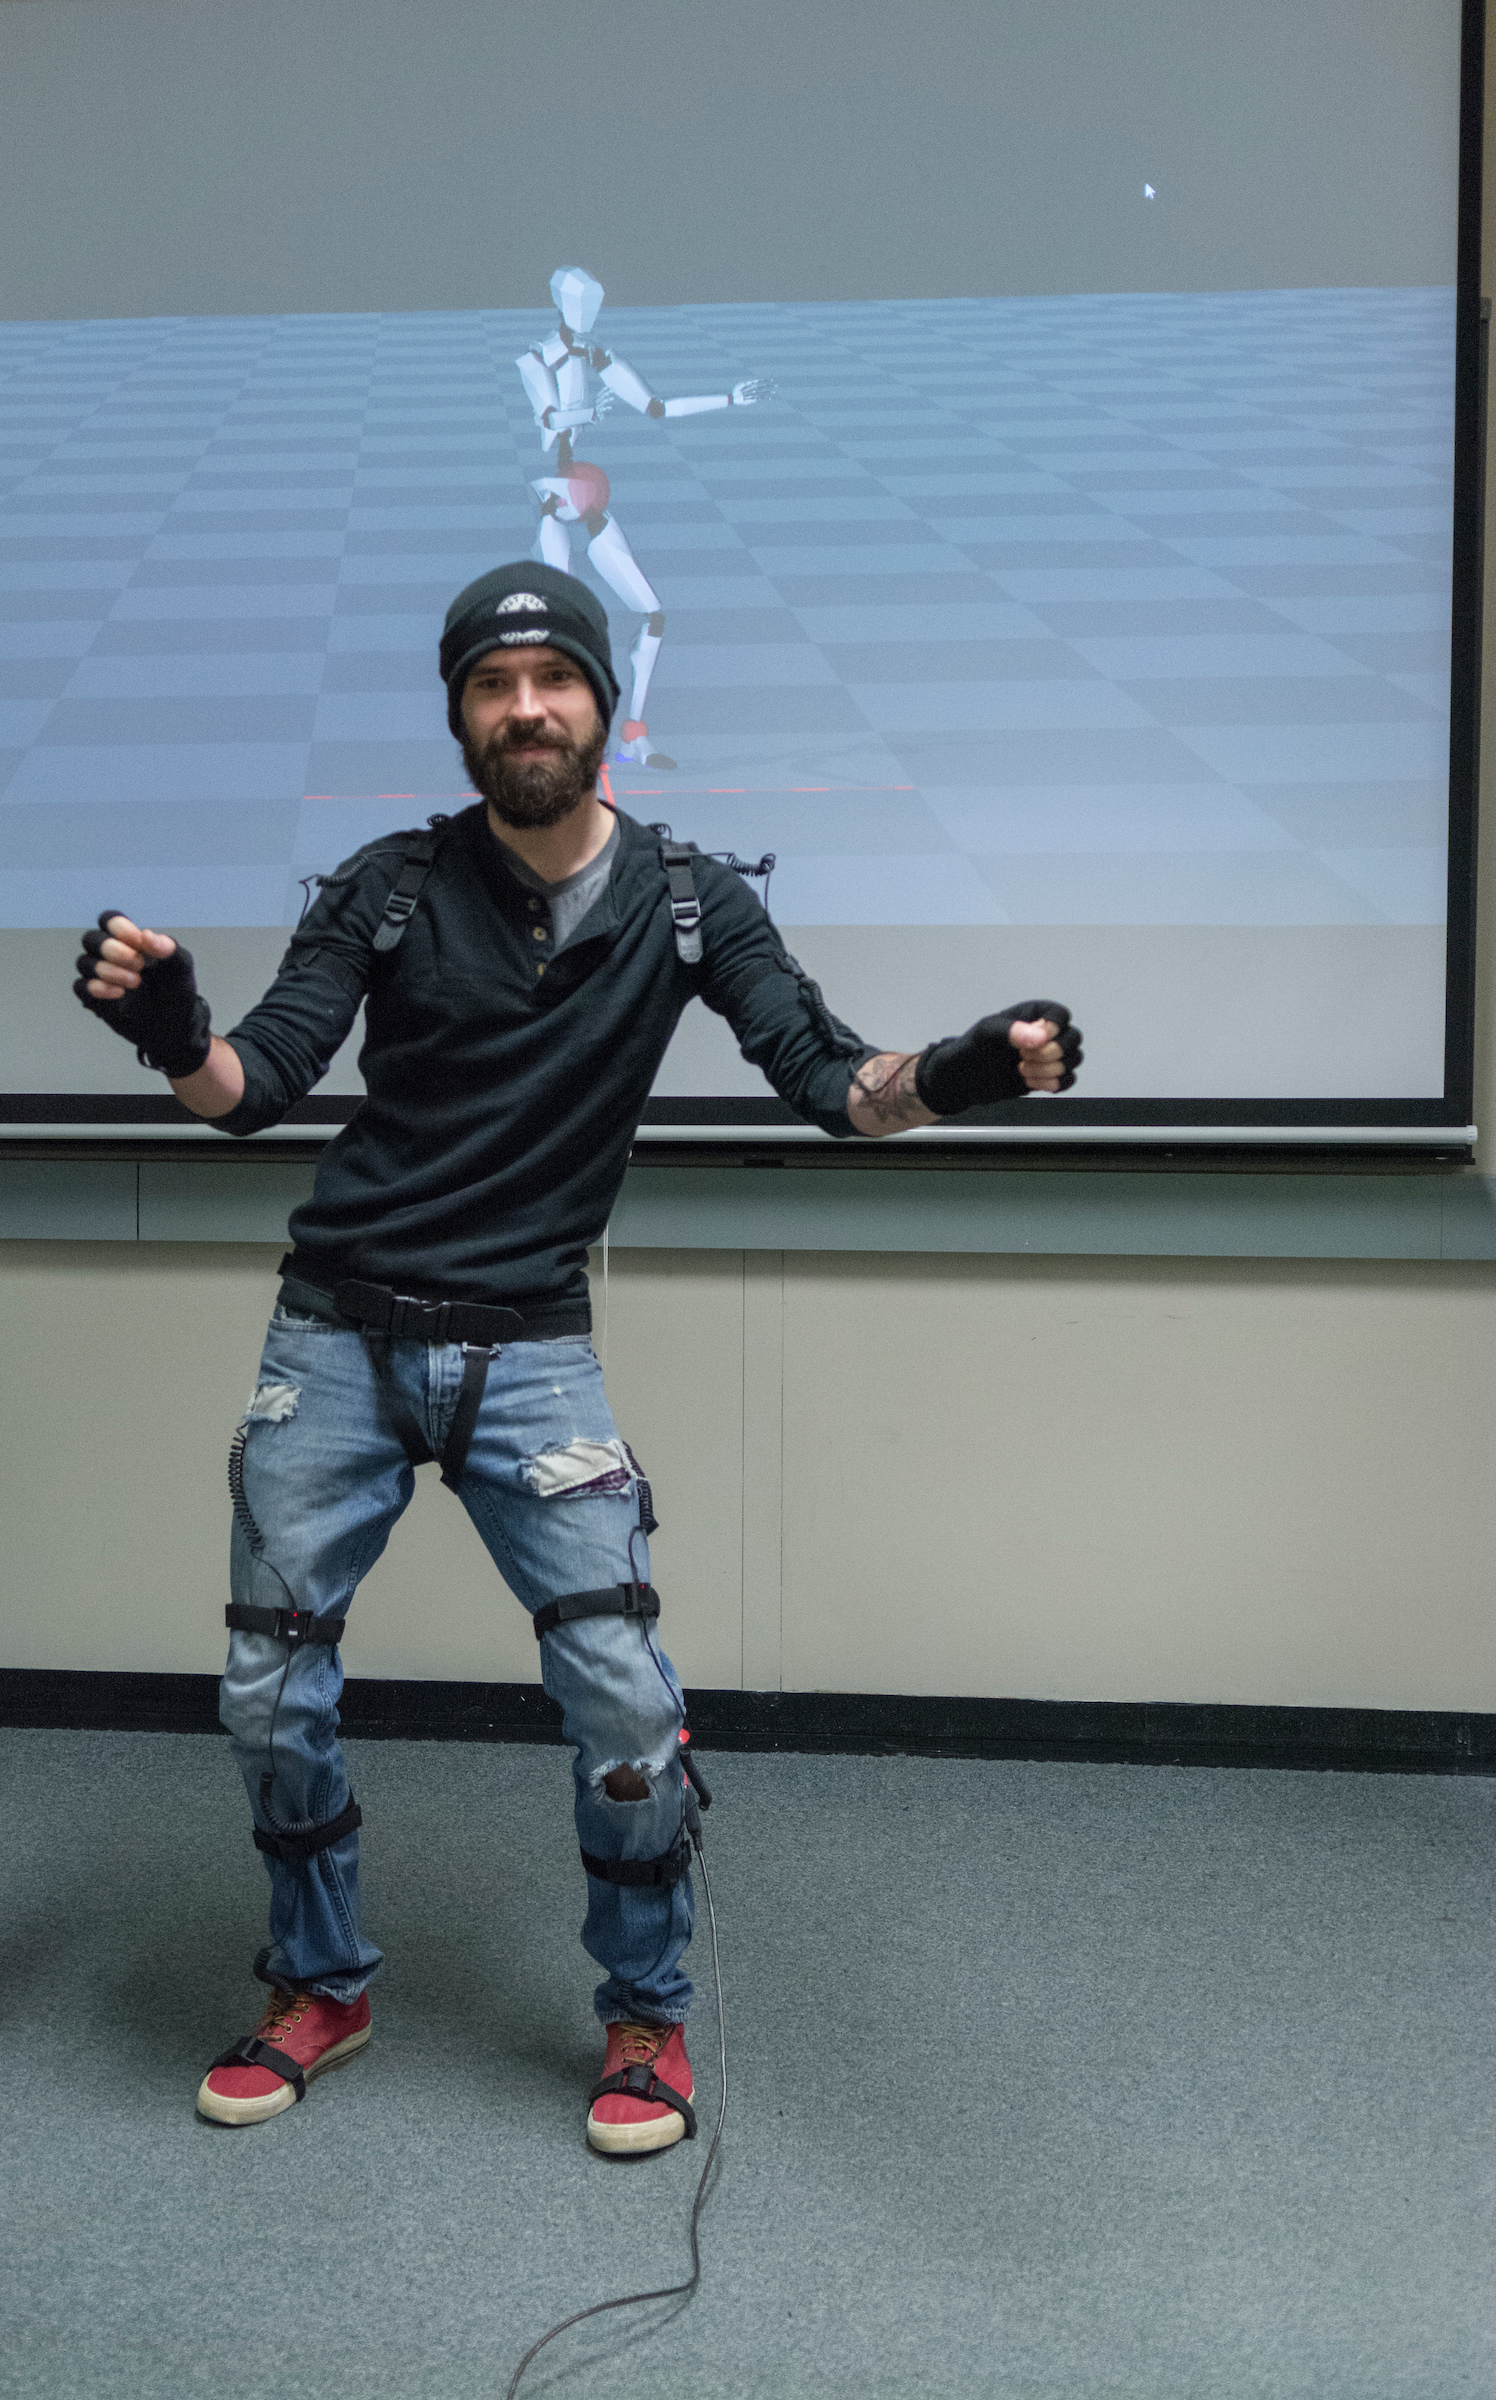 An animator wears motion capture equipment. The screen behind him displays a simple figure making the same movements.